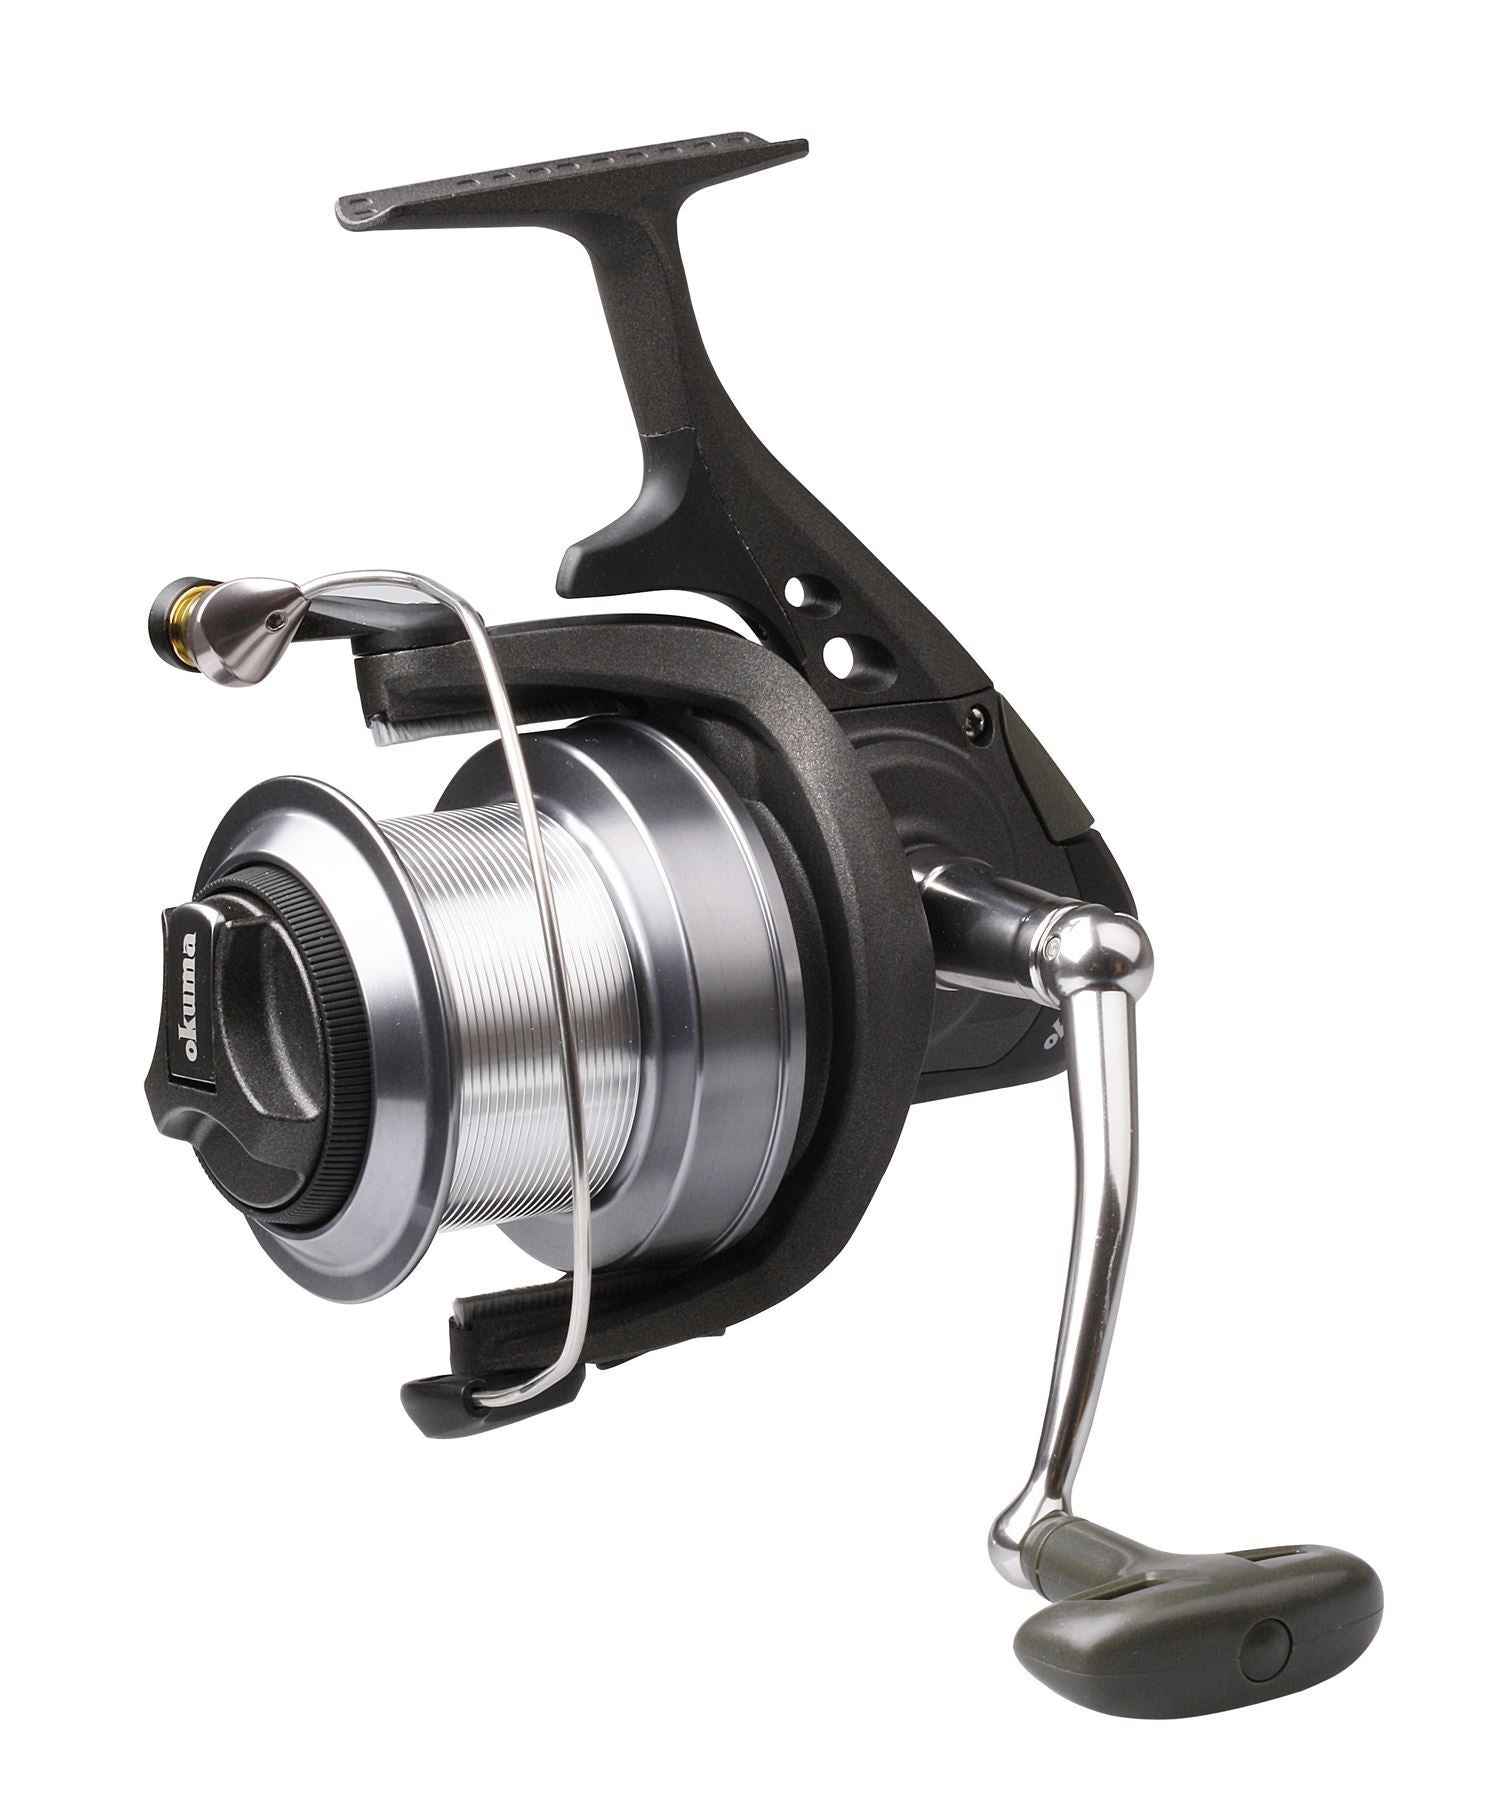 Okuma Distance Carp Pro INTG DCI-60 FD 9+1bb Carp/Surf Reel - reid outdoors